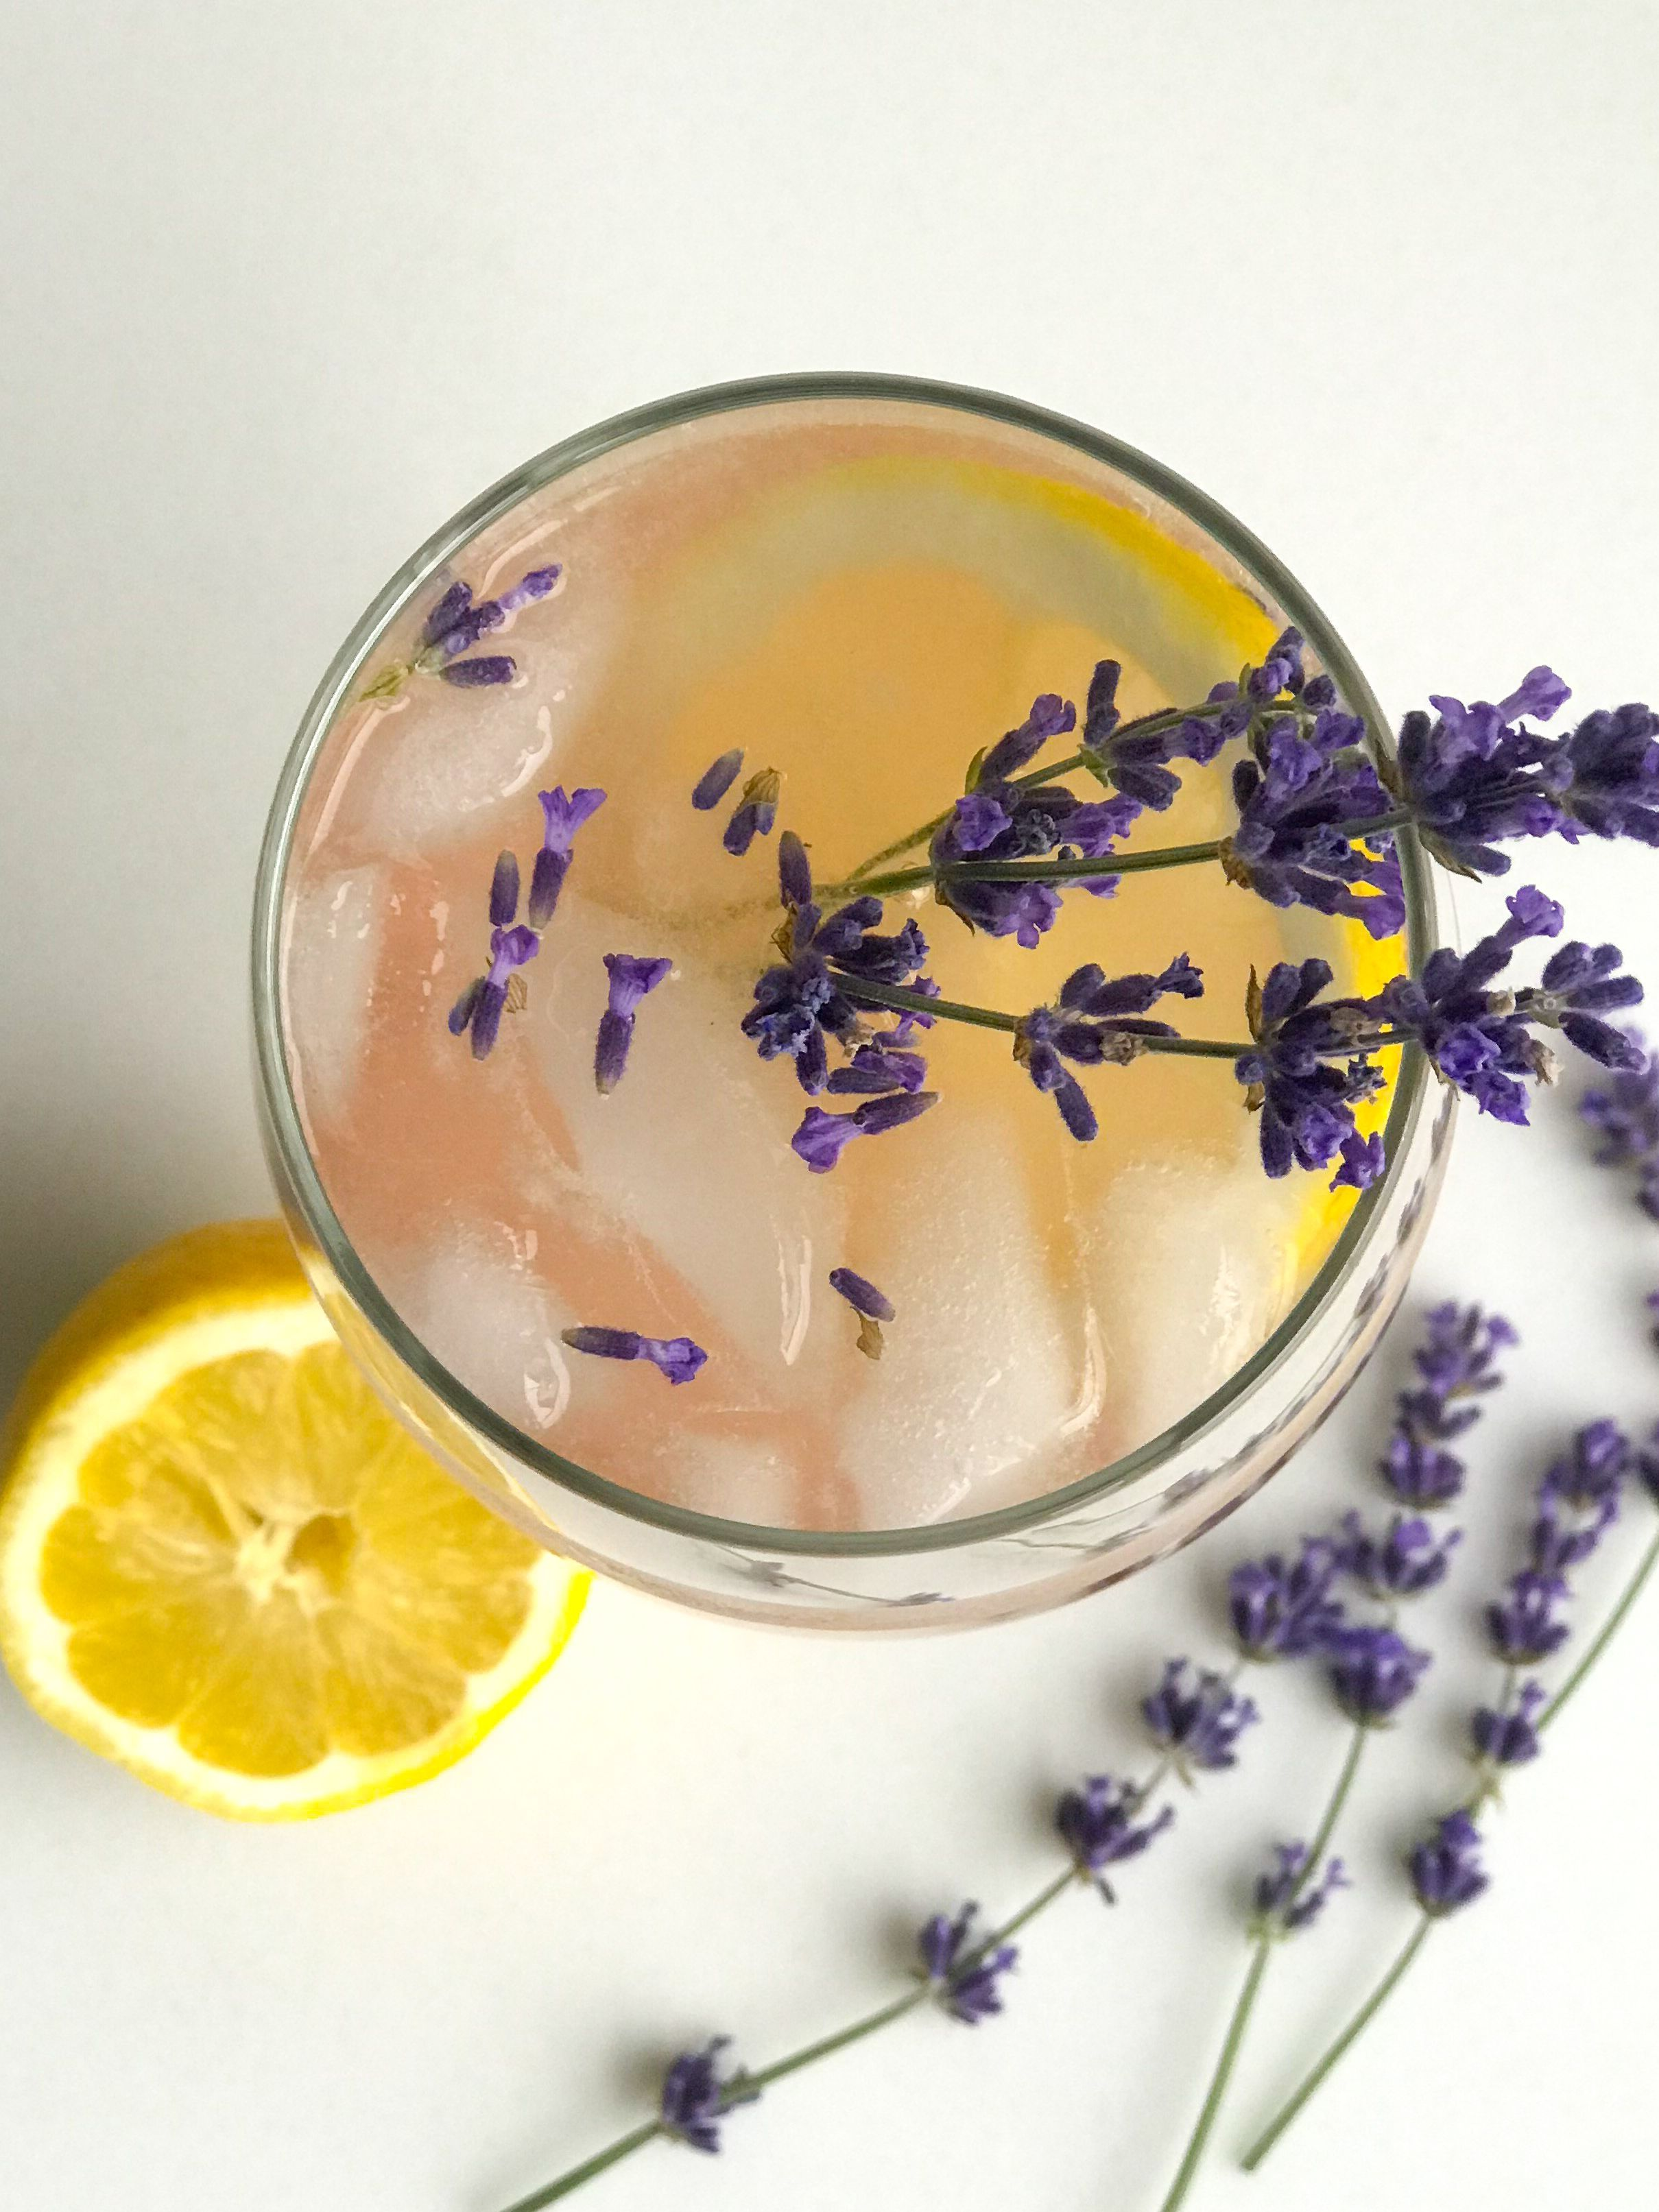 Sparkling Rose Lemonade With Lavender Recipe By Nicole Matheson The Feedfeed Recipe In 2020 Lavender Recipes Rose Lemonade Lemonade